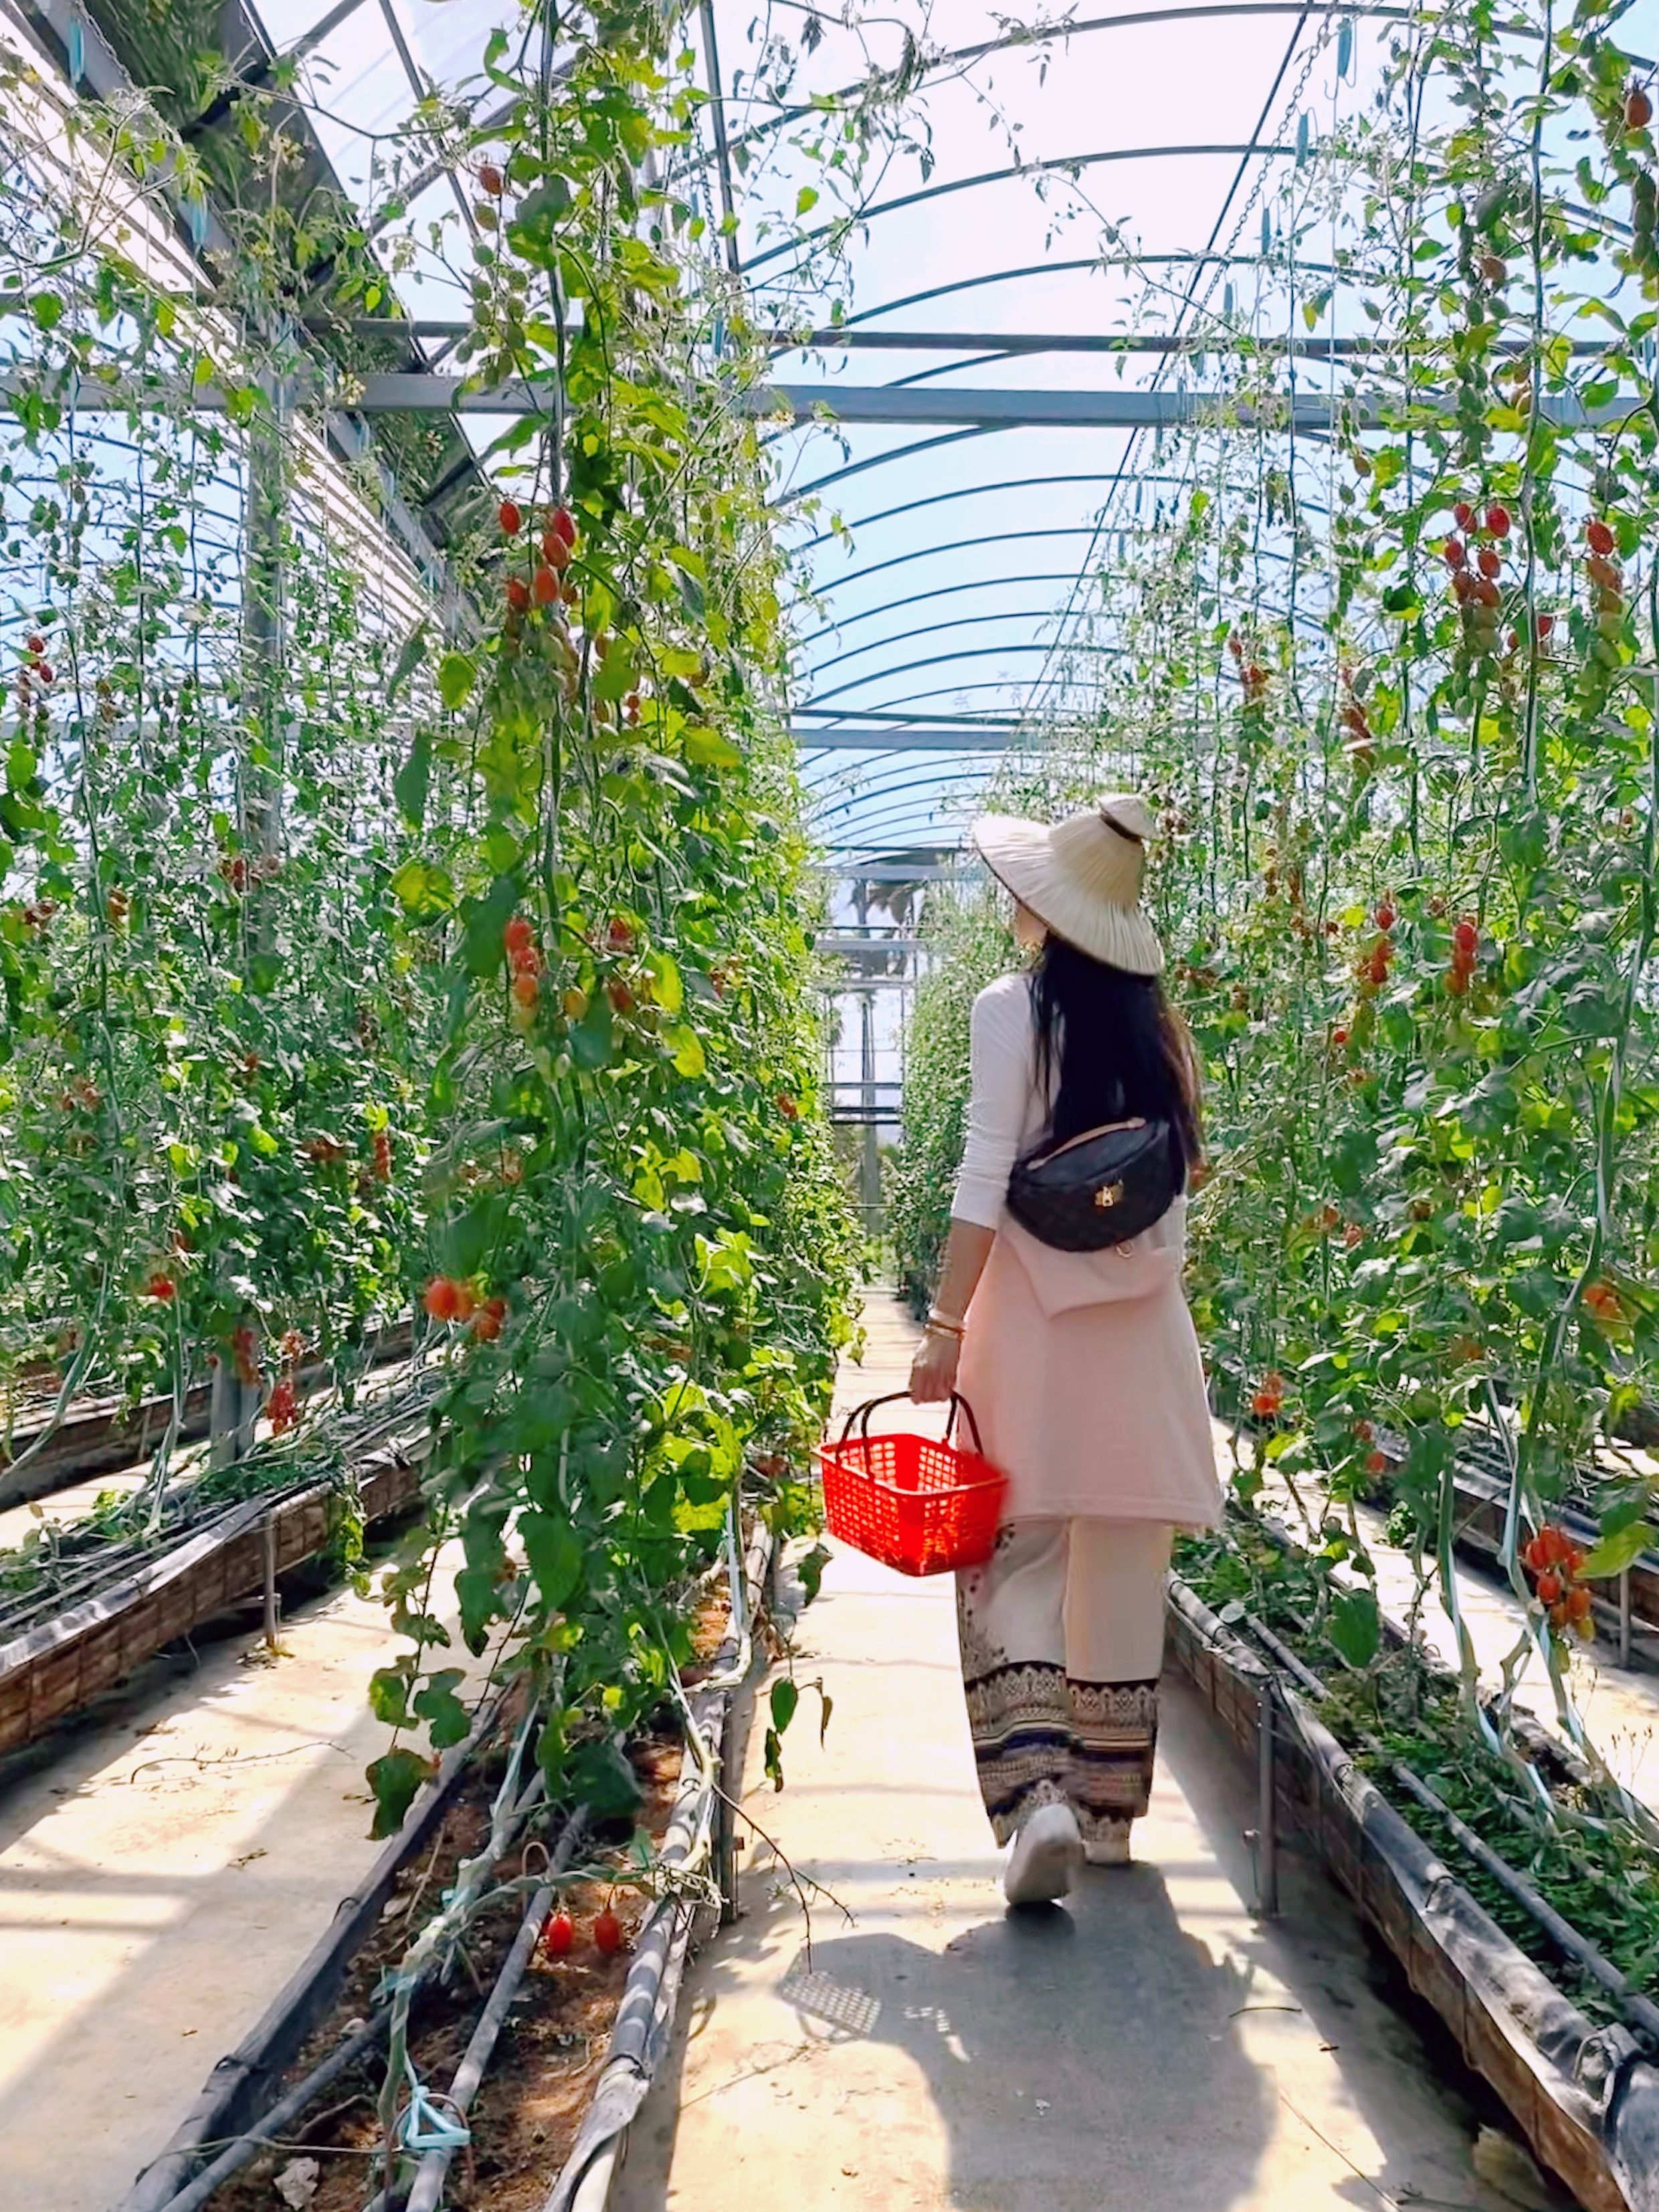 Tomato vines in Dahu township in Taiwan